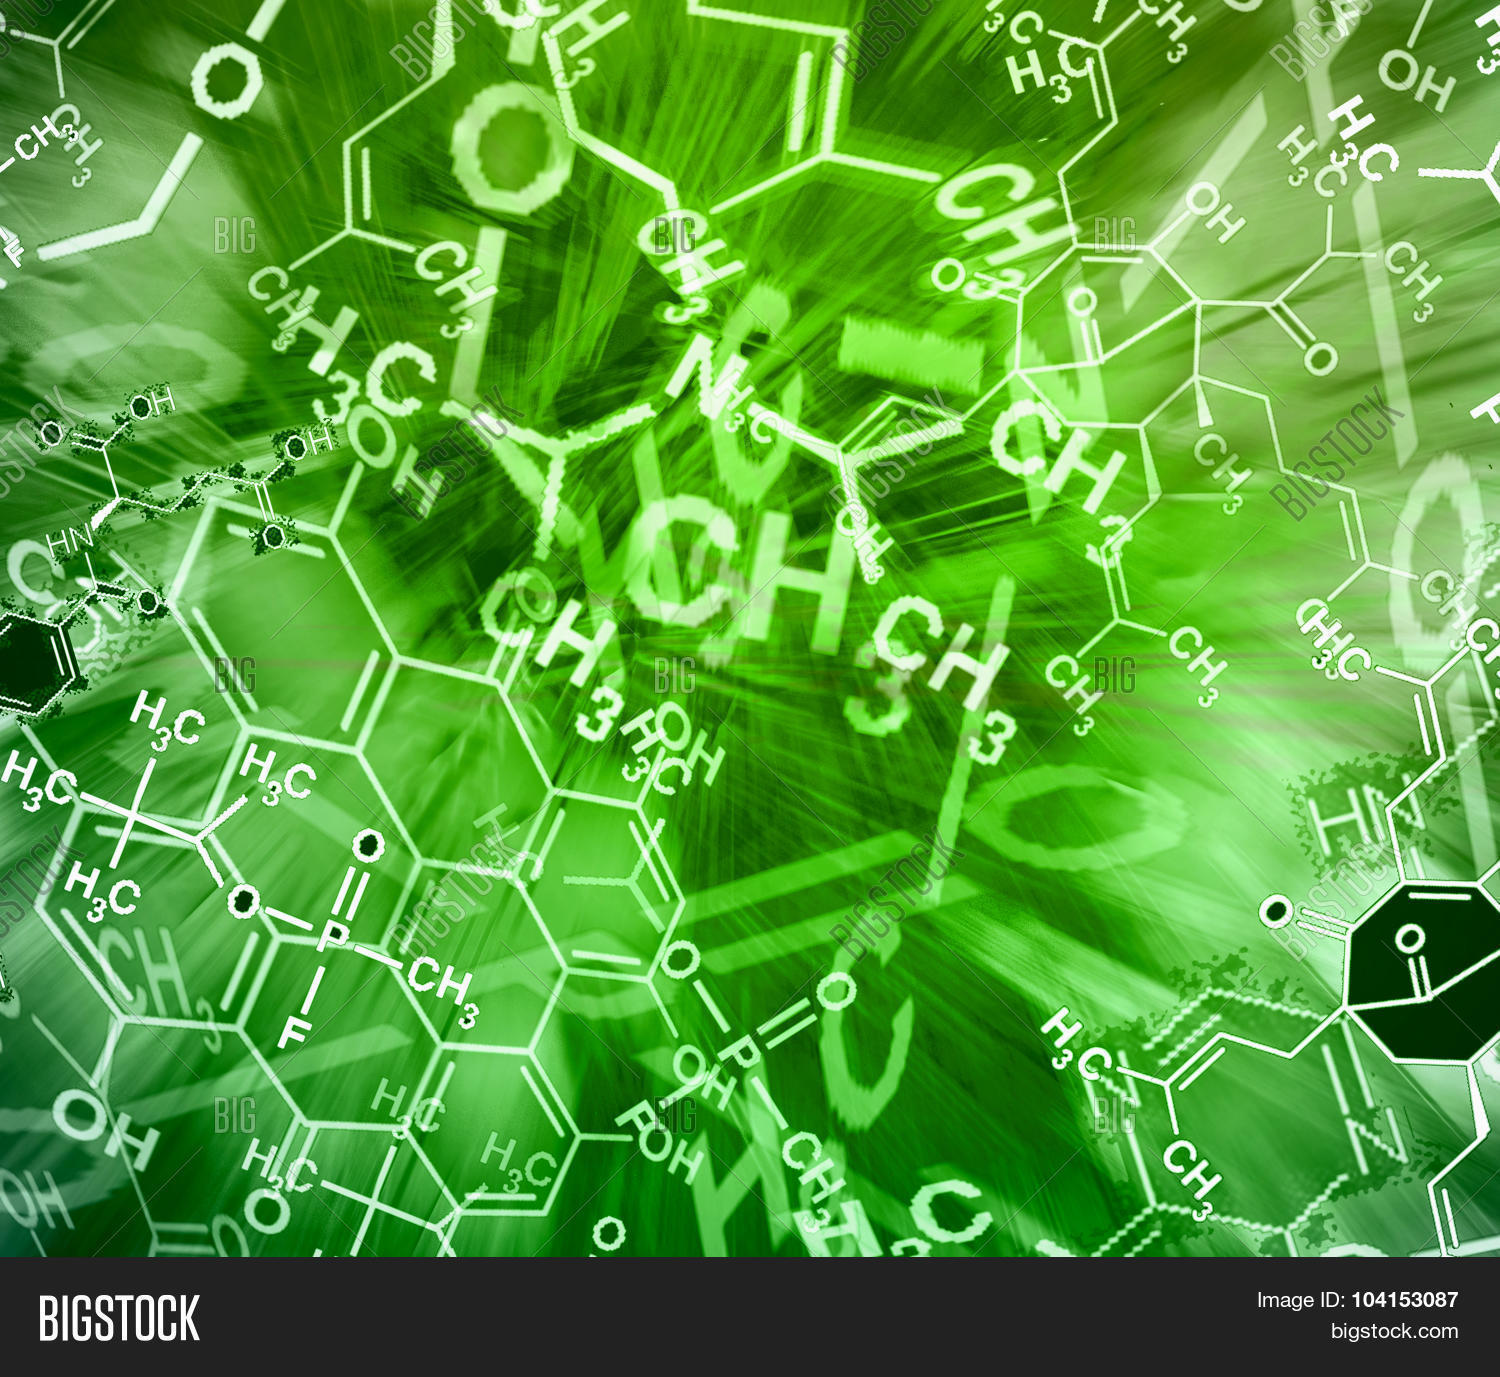 Science Wallpaper Background